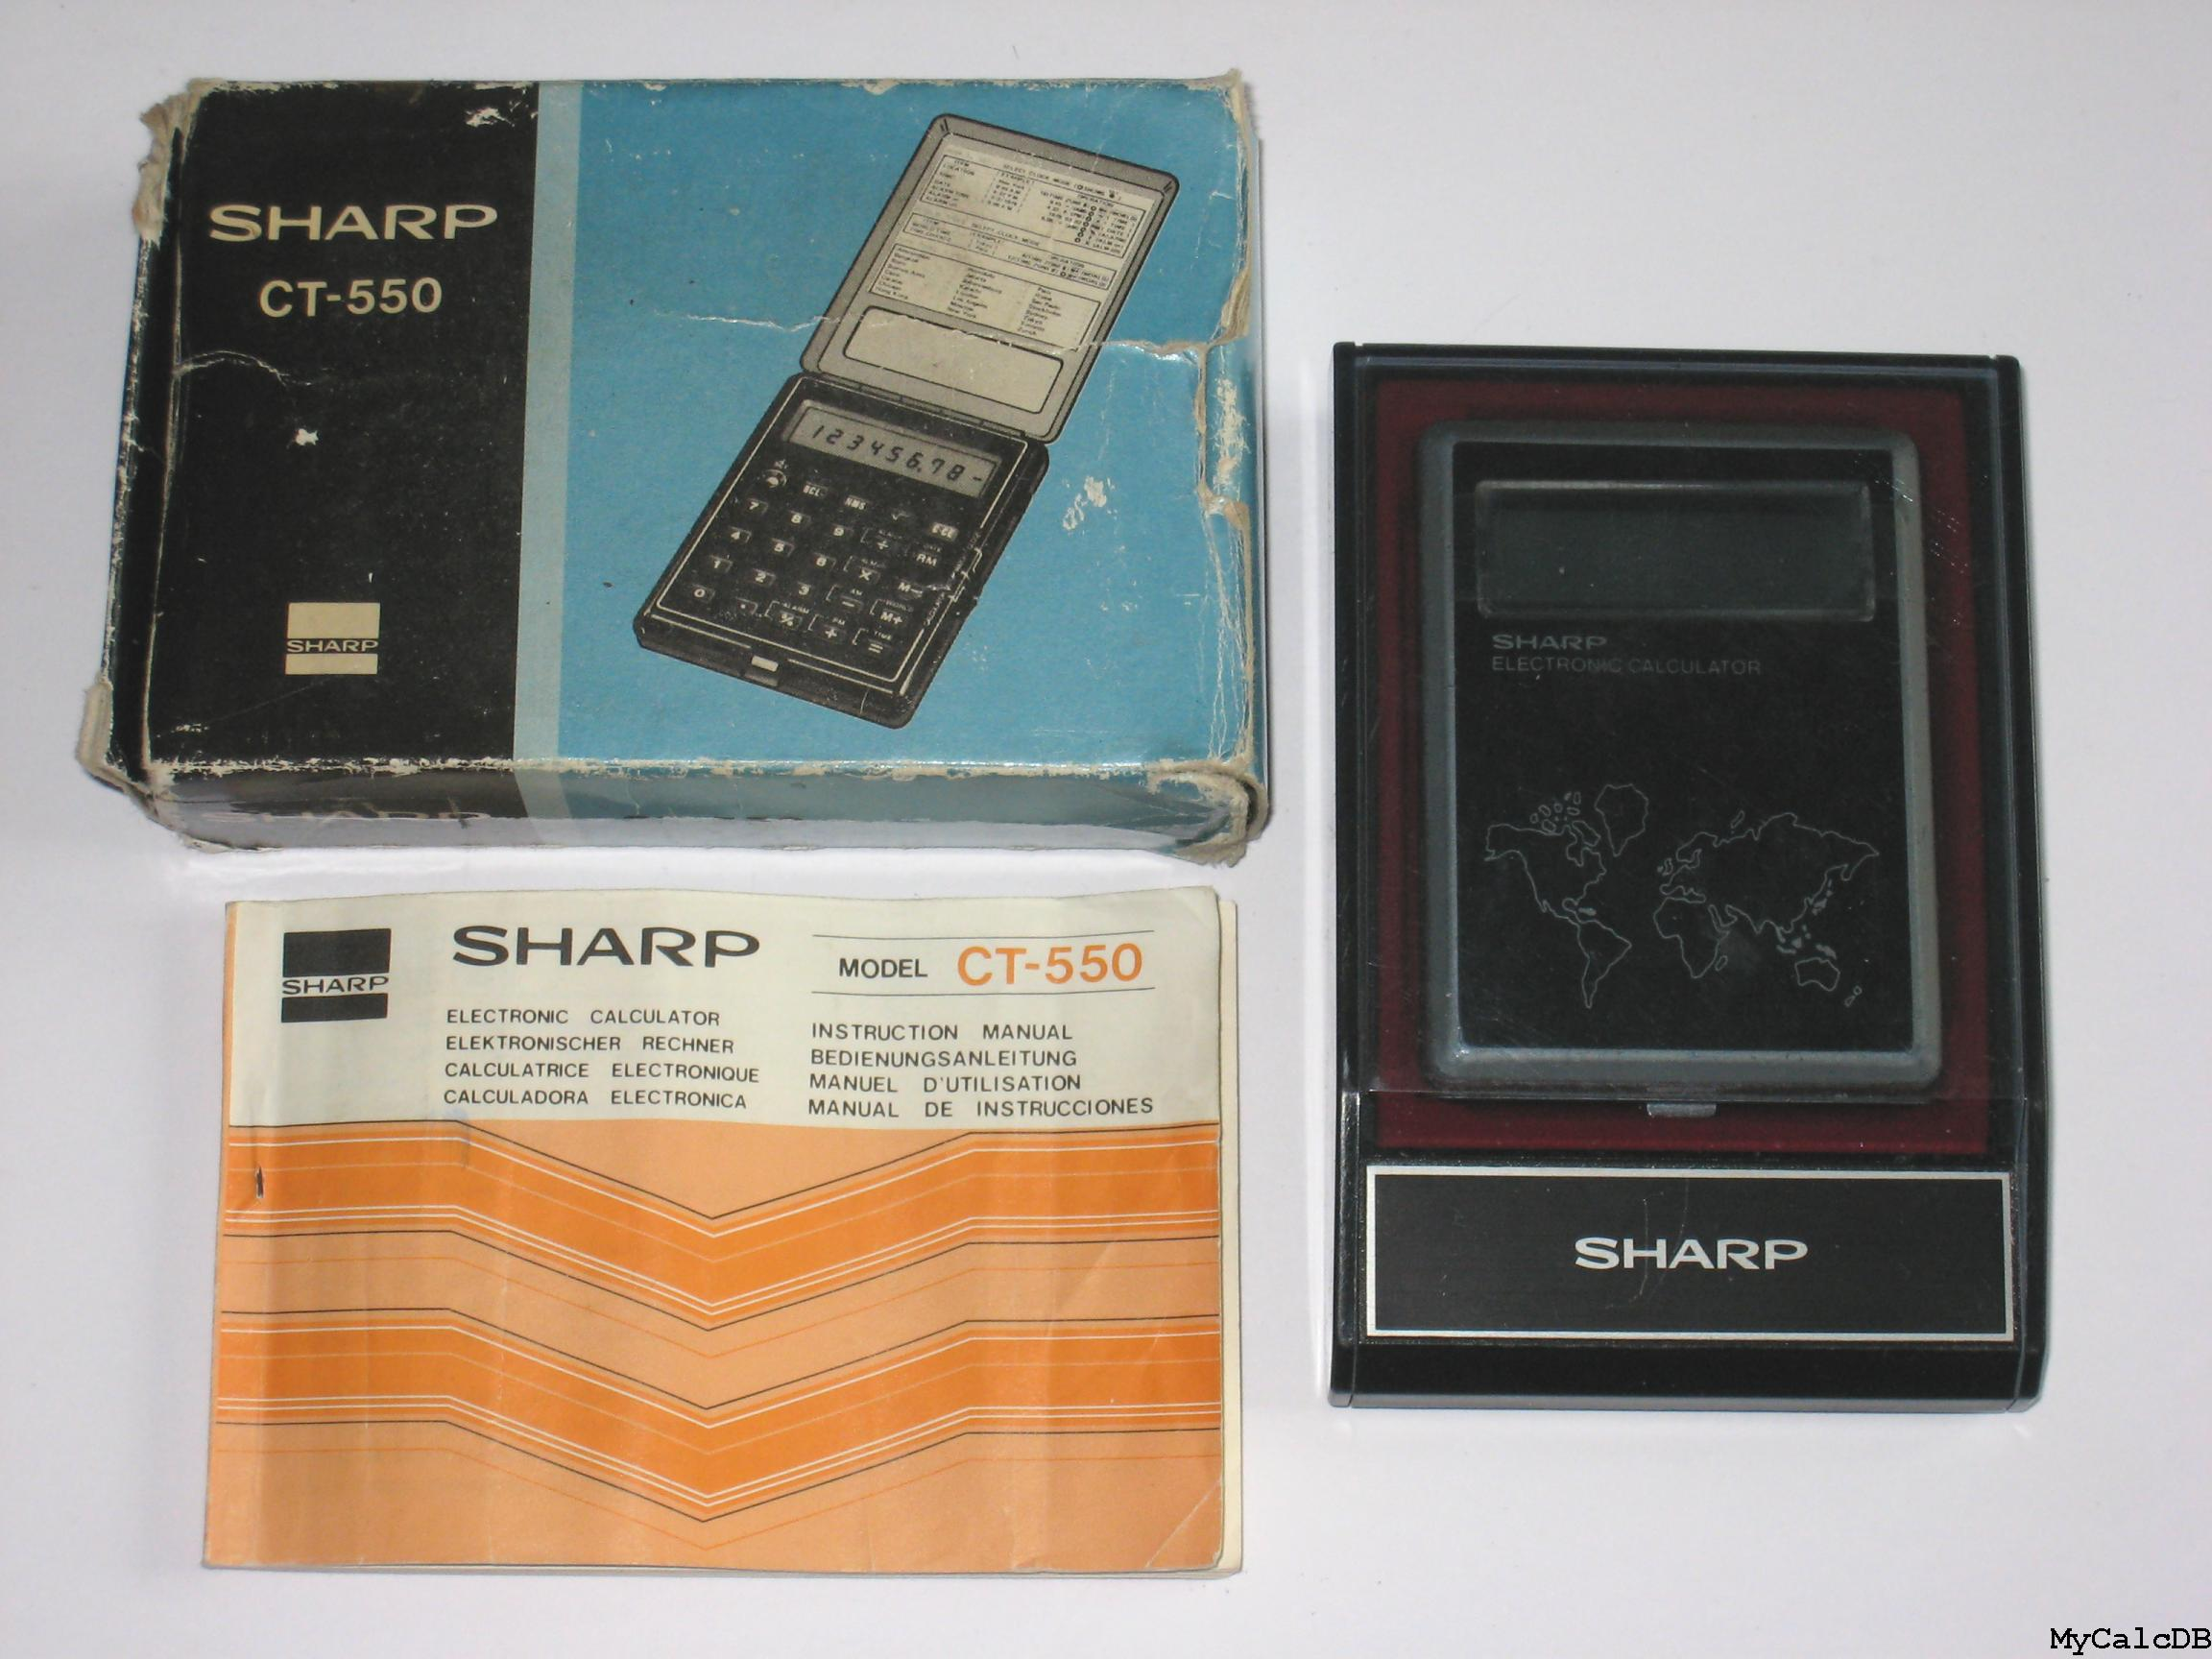 Sharp CT-550